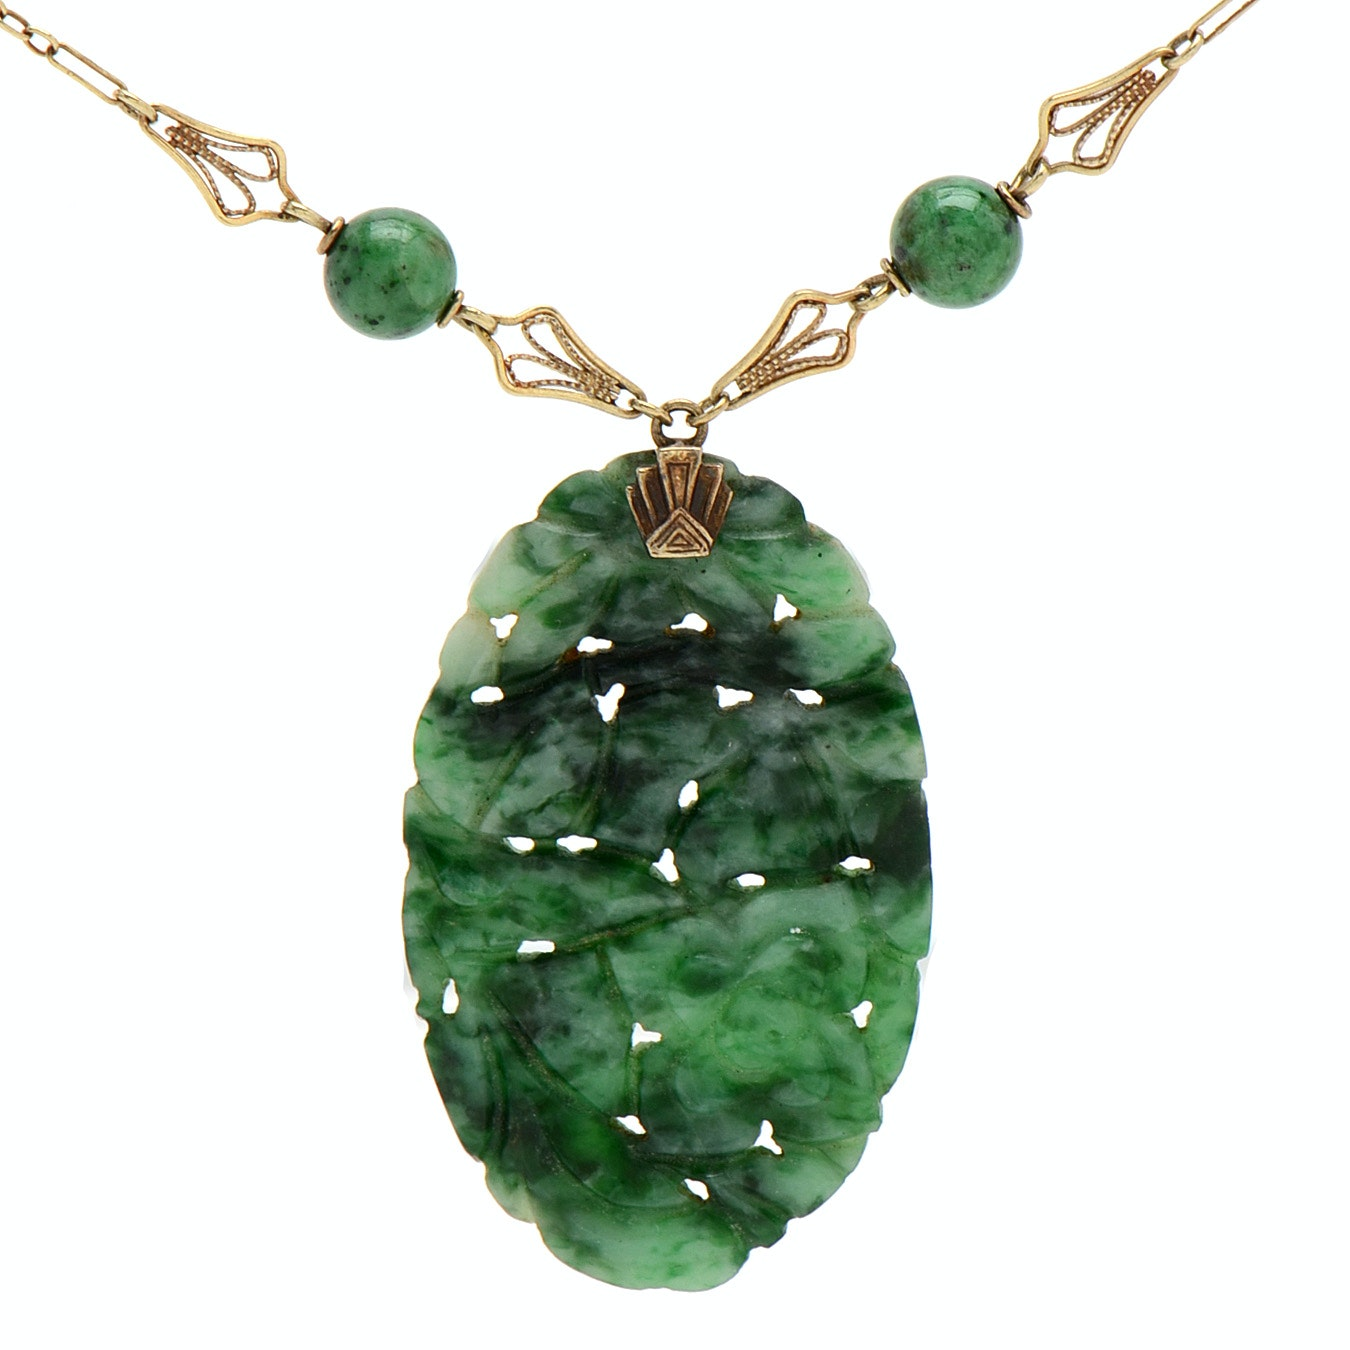 Vintage 14K Yellow Gold and Carved Jadeite Necklace